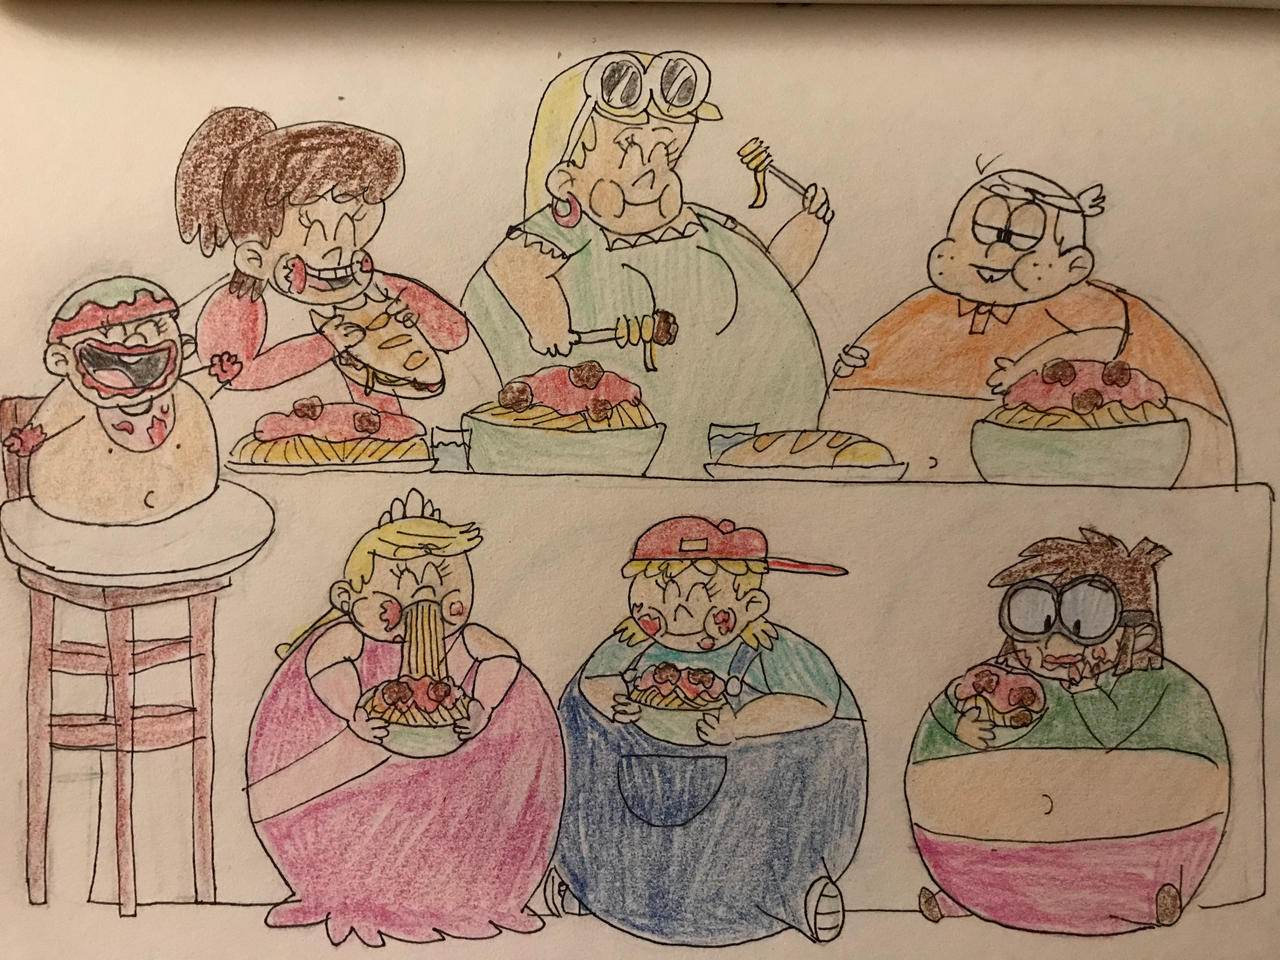 I Hope They Eat Tons Of Spaghetti 2 By Tanasweet123 On Deviantart